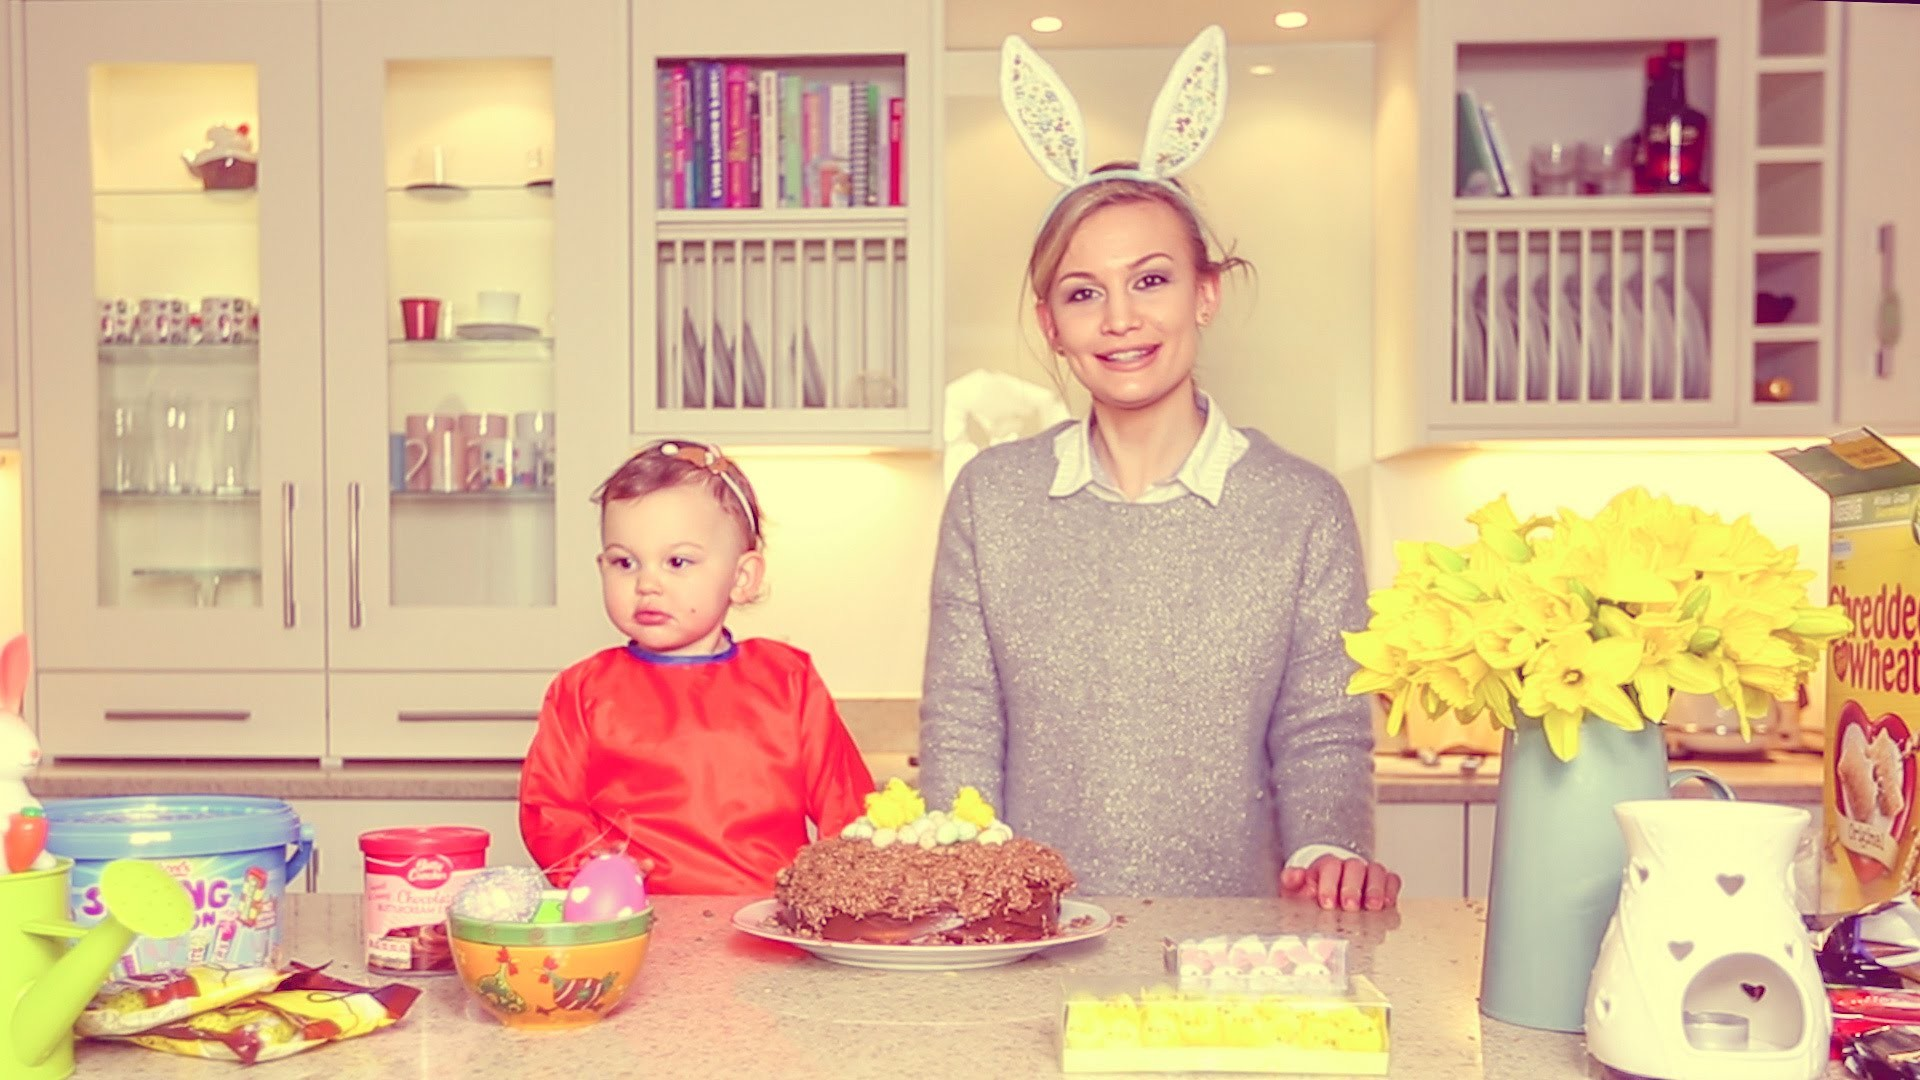 #ad | HOW TO: Easter Nest Cake Recipe with SACCONEJOLYs!